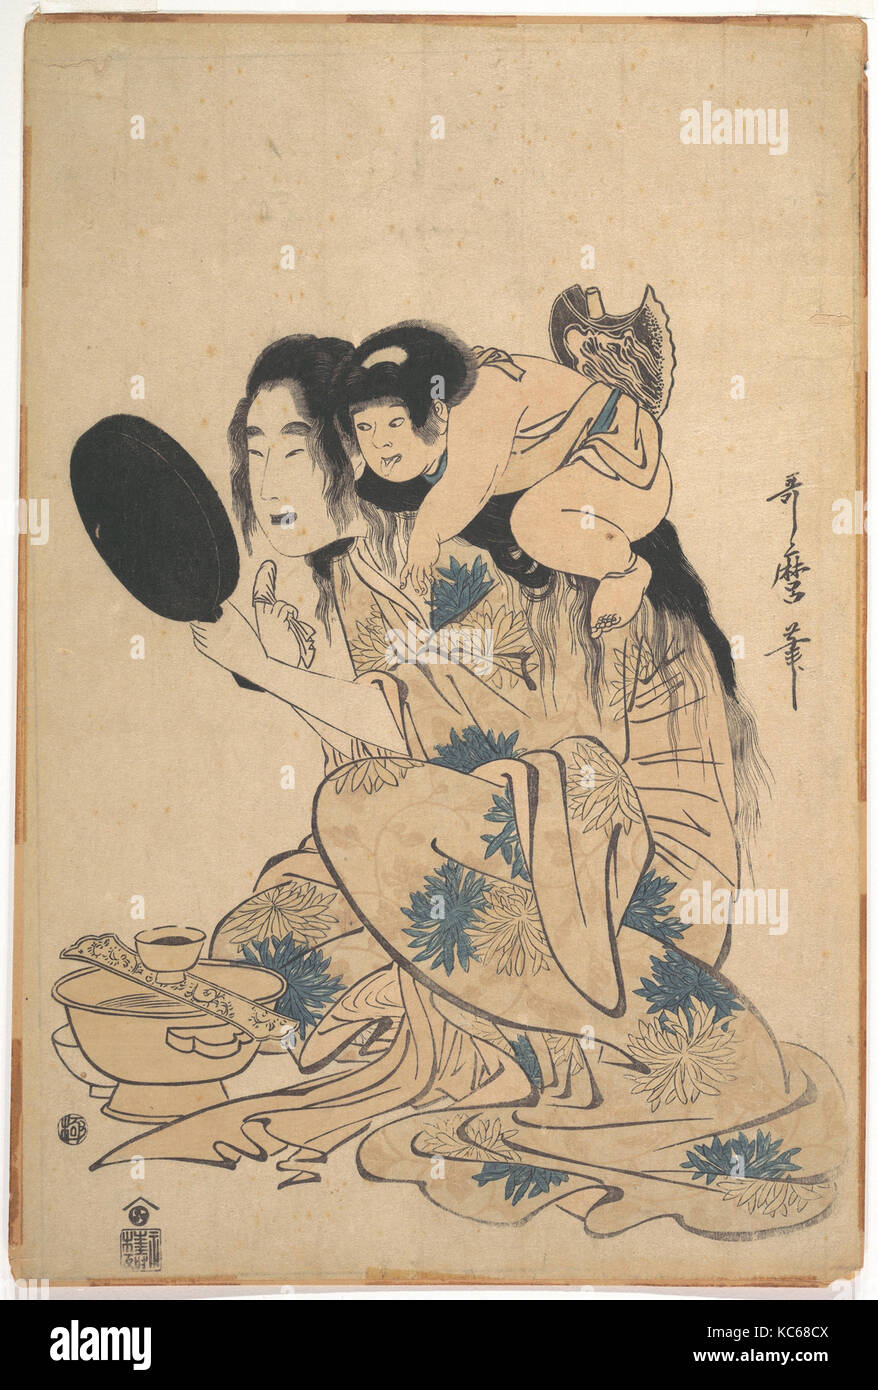 Yamauba blackening Her teeth and Kintoki, Kitagawa Utamaro, ca. 1795 - Stock Image